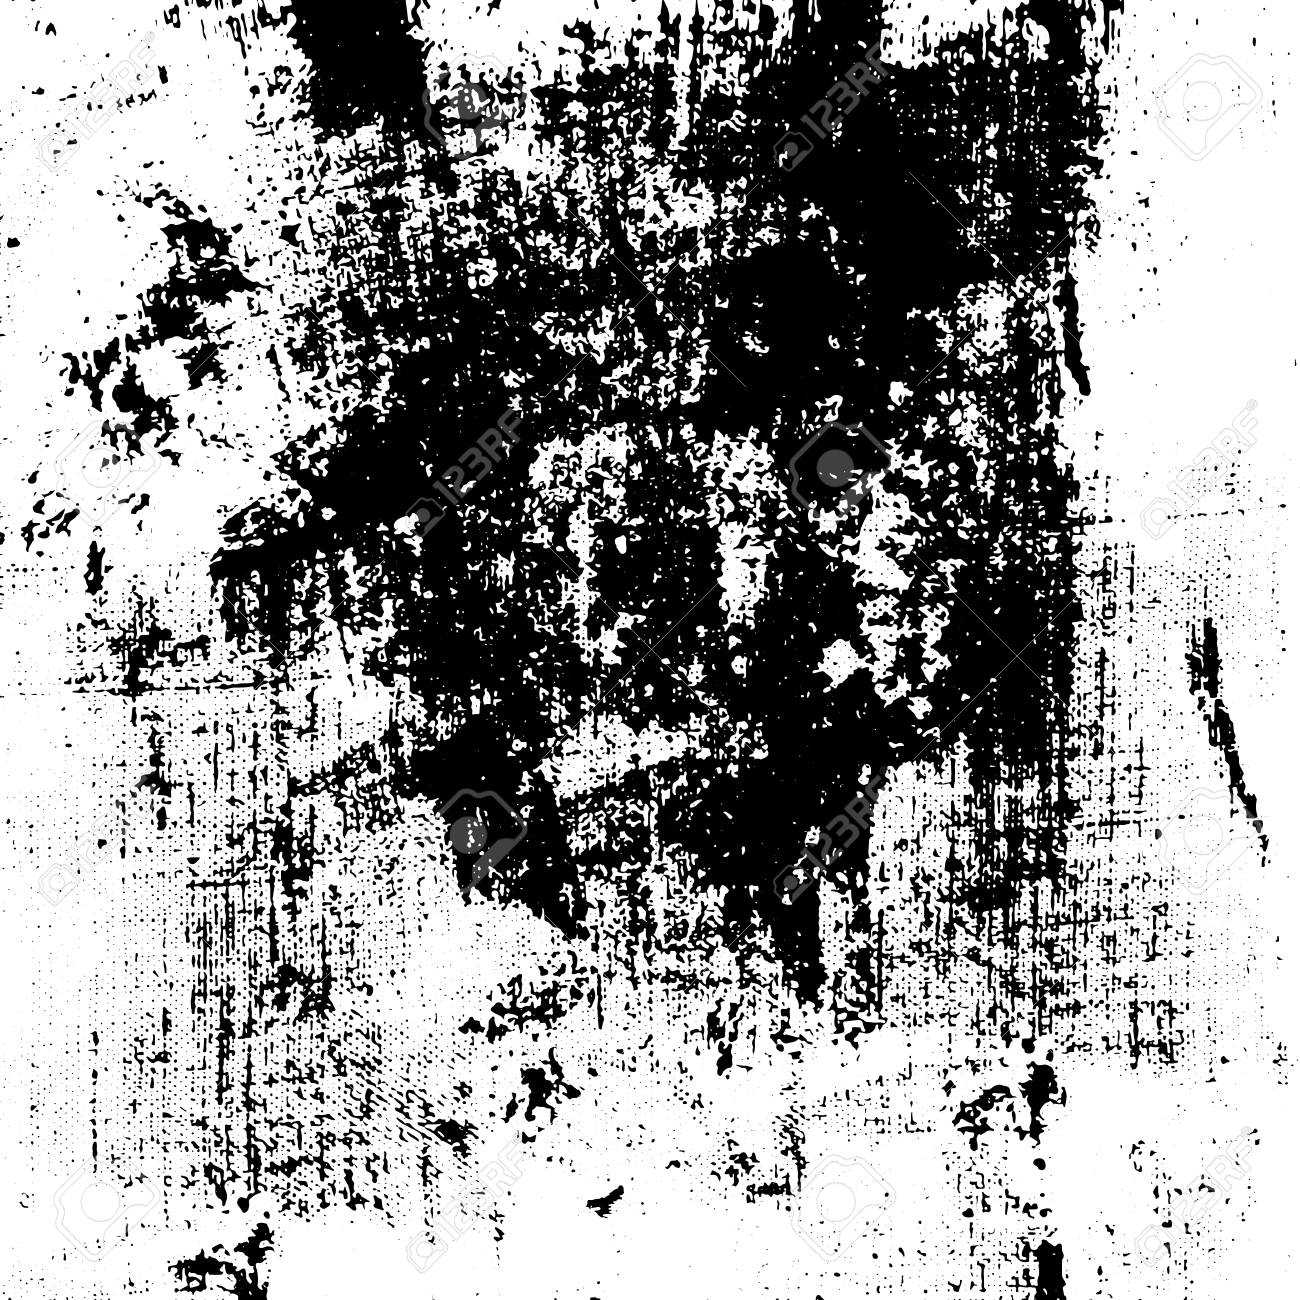 Grunge Texture Black And White Ink On Paper Hand Brush Vintage Urban Abstract Print